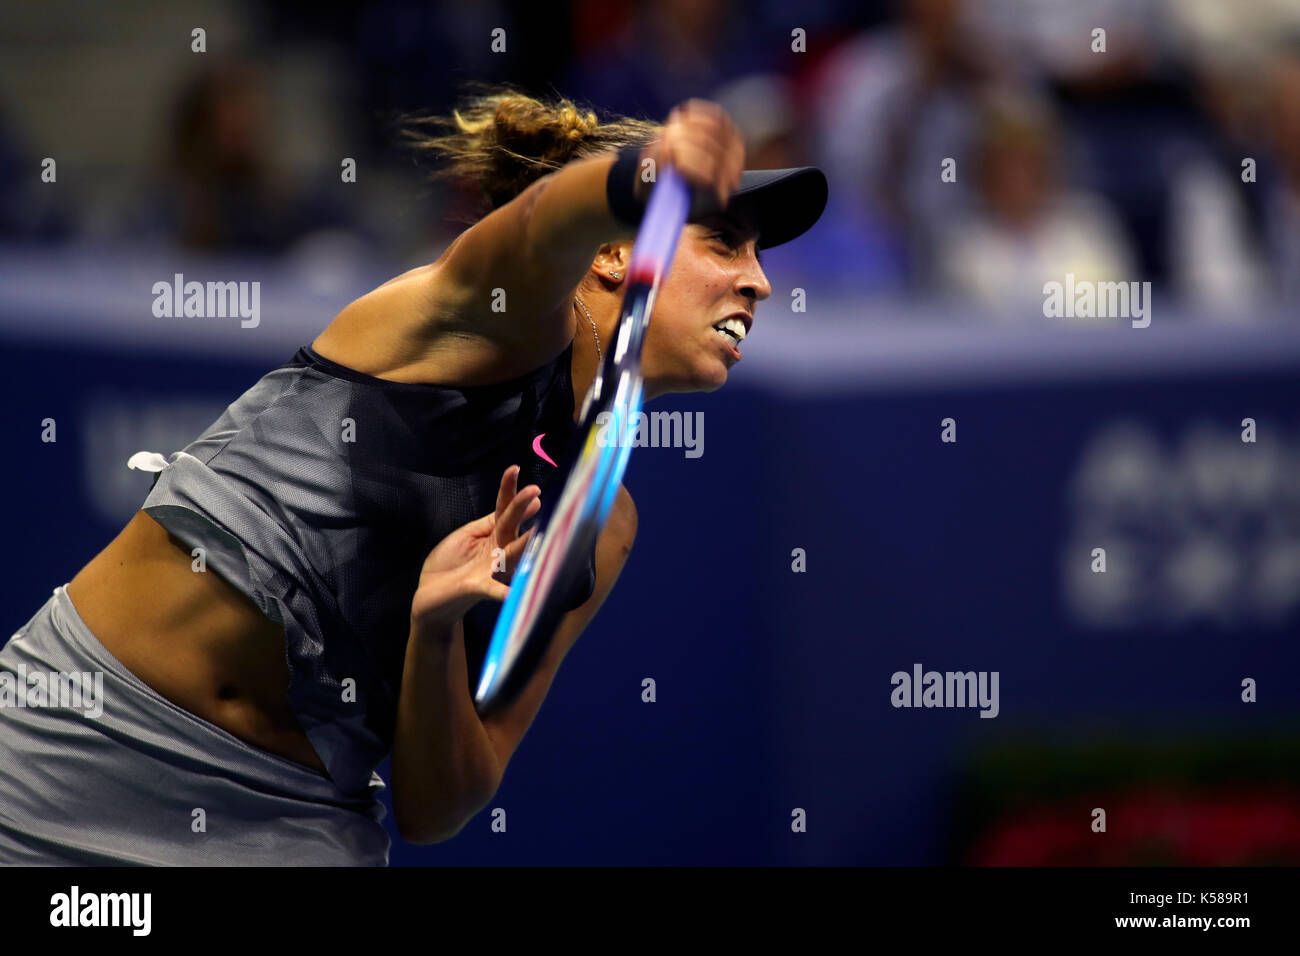 New York, United States. 07th Sep, 2017. US Open Tennis: New York, 7 September, 2017 - Madison Keys of the United - Stock Image